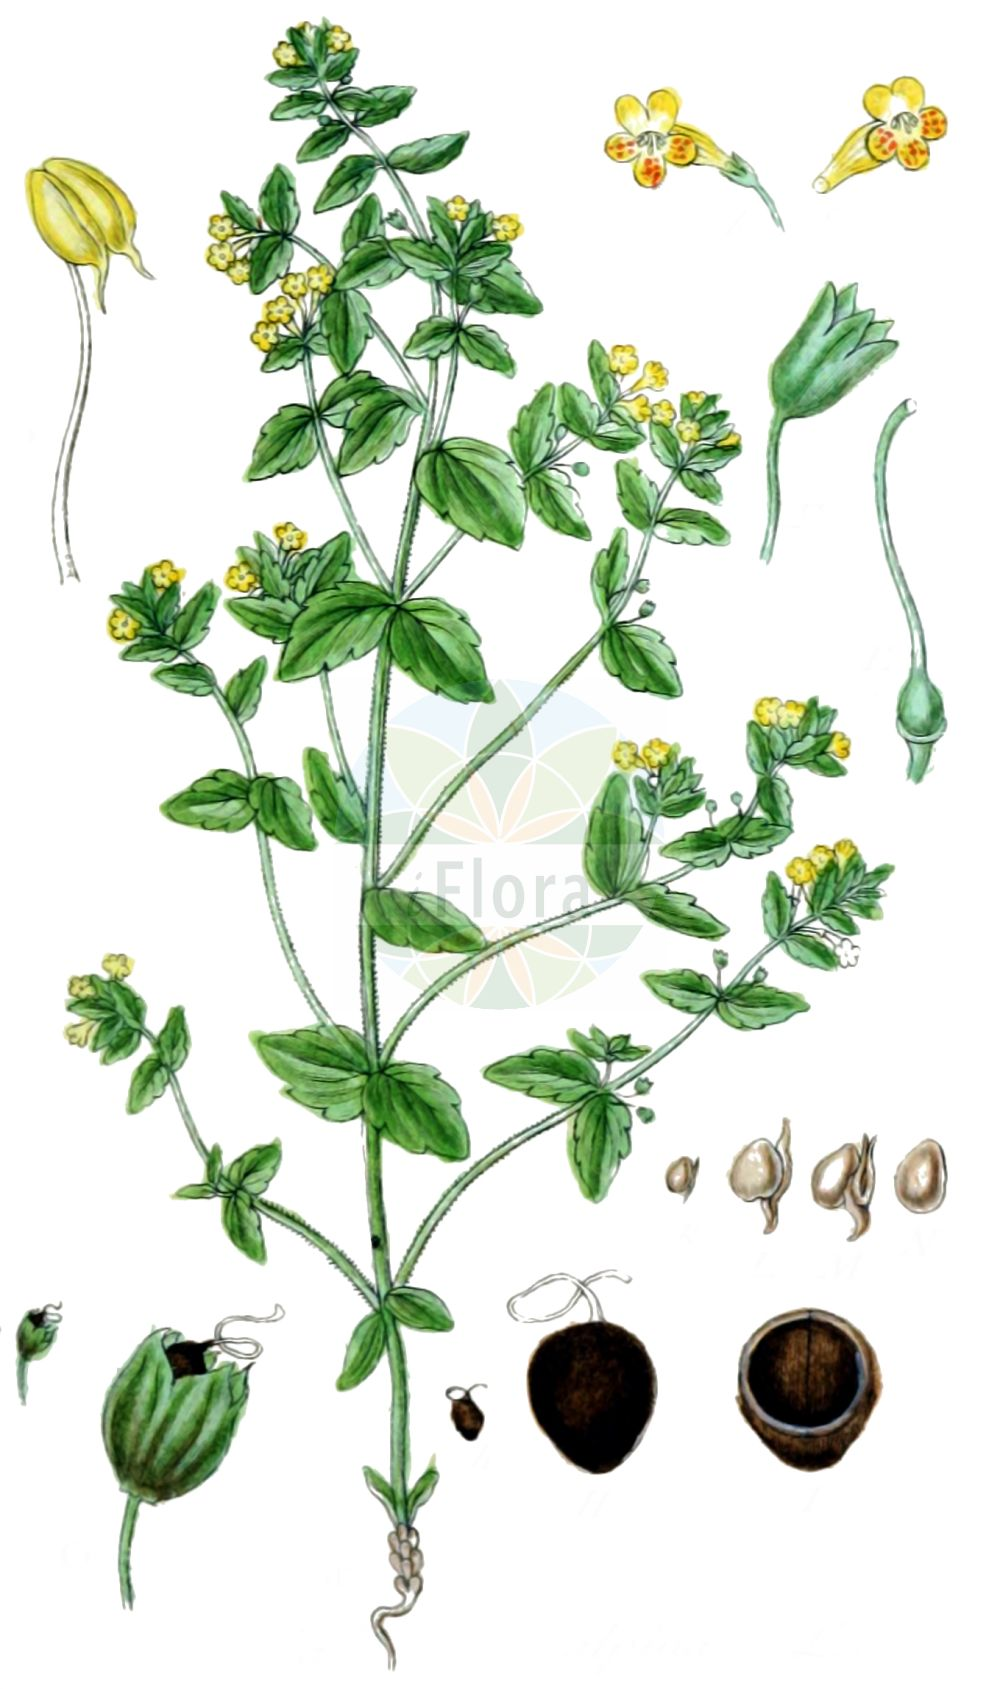 Historische Abbildung von Tozzia alpina (Alpenrachen - Alpine Tozzia). Das Bild zeigt Blatt, Bluete, Frucht und Same. ---- Historical Drawing of Tozzia alpina (Alpenrachen - Alpine Tozzia).The image is showing leaf, flower, fruit and seed.(Tozzia alpina,Alpenrachen,Alpine Tozzia,Tozzia alpina,Alpenrachen,Tozzie,Alpine Tozzia,Tozzia,Alpenrachen,Orobanchaceae,Sommerwurzgewaechse,Broomrape family,Blatt,Bluete,Frucht,Same,leaf,flower,fruit,seed,Sturm (1796f))